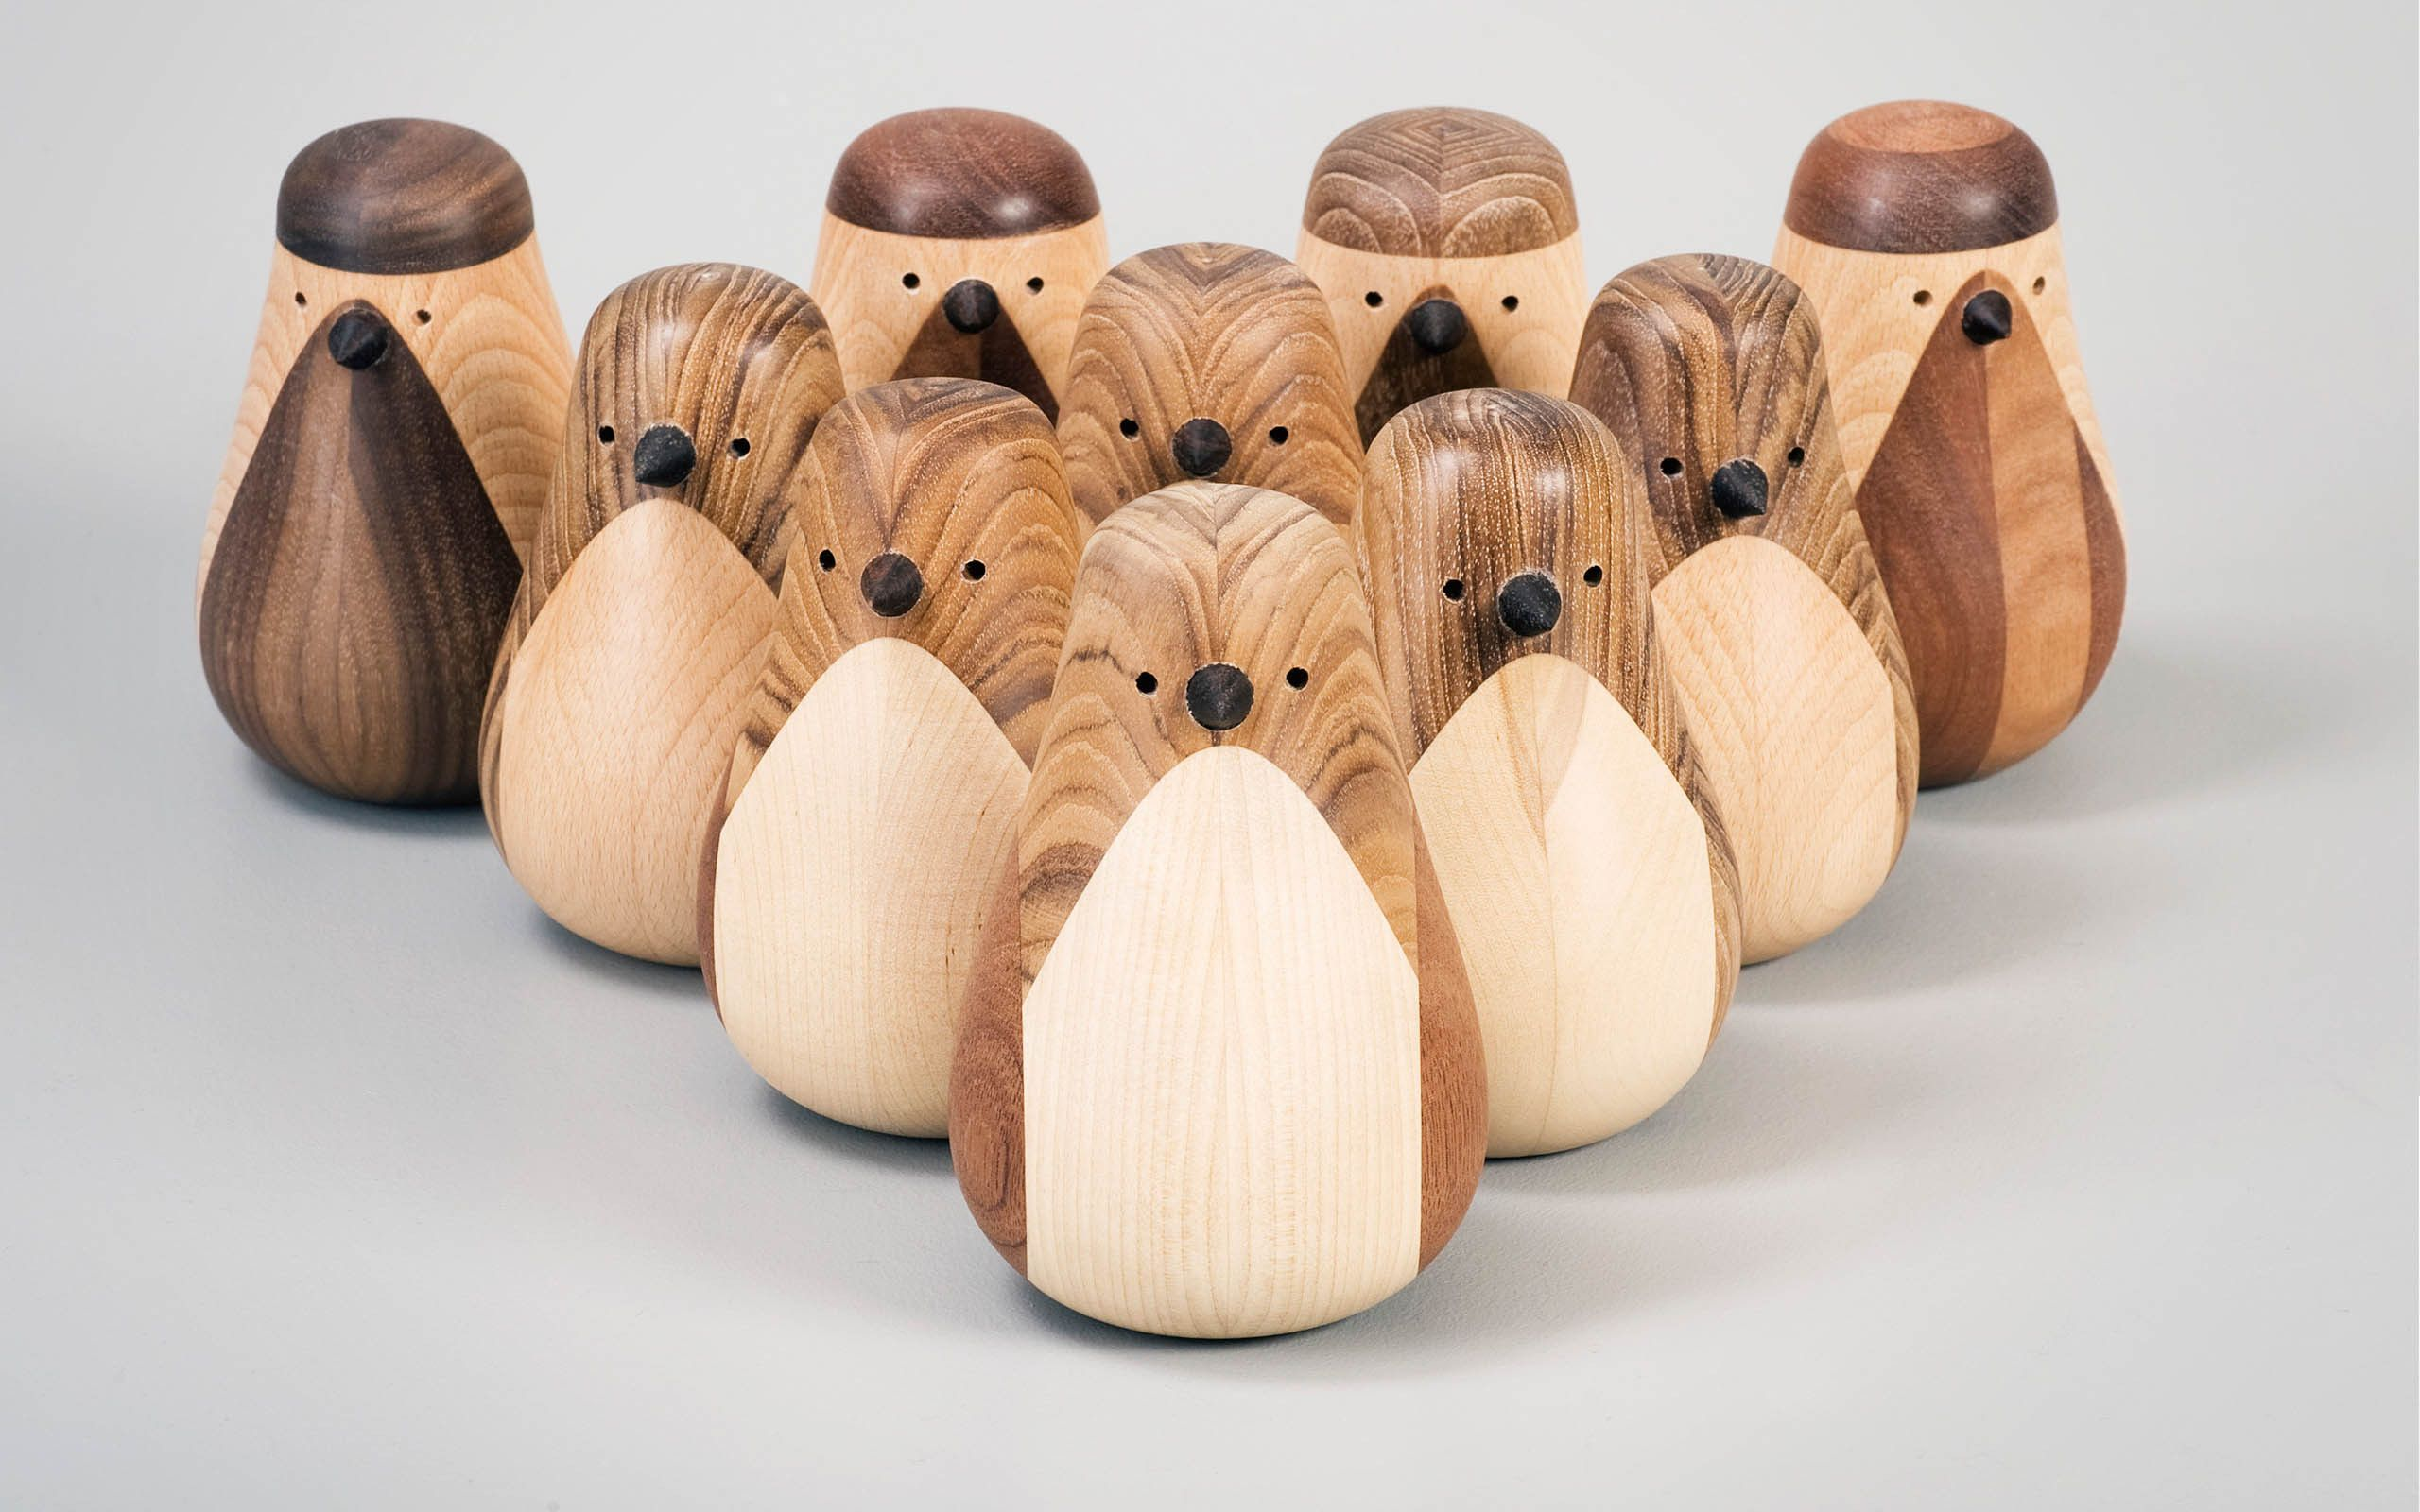 Re-turned birds. Made from recycled table-legs and arm rests! — Beller